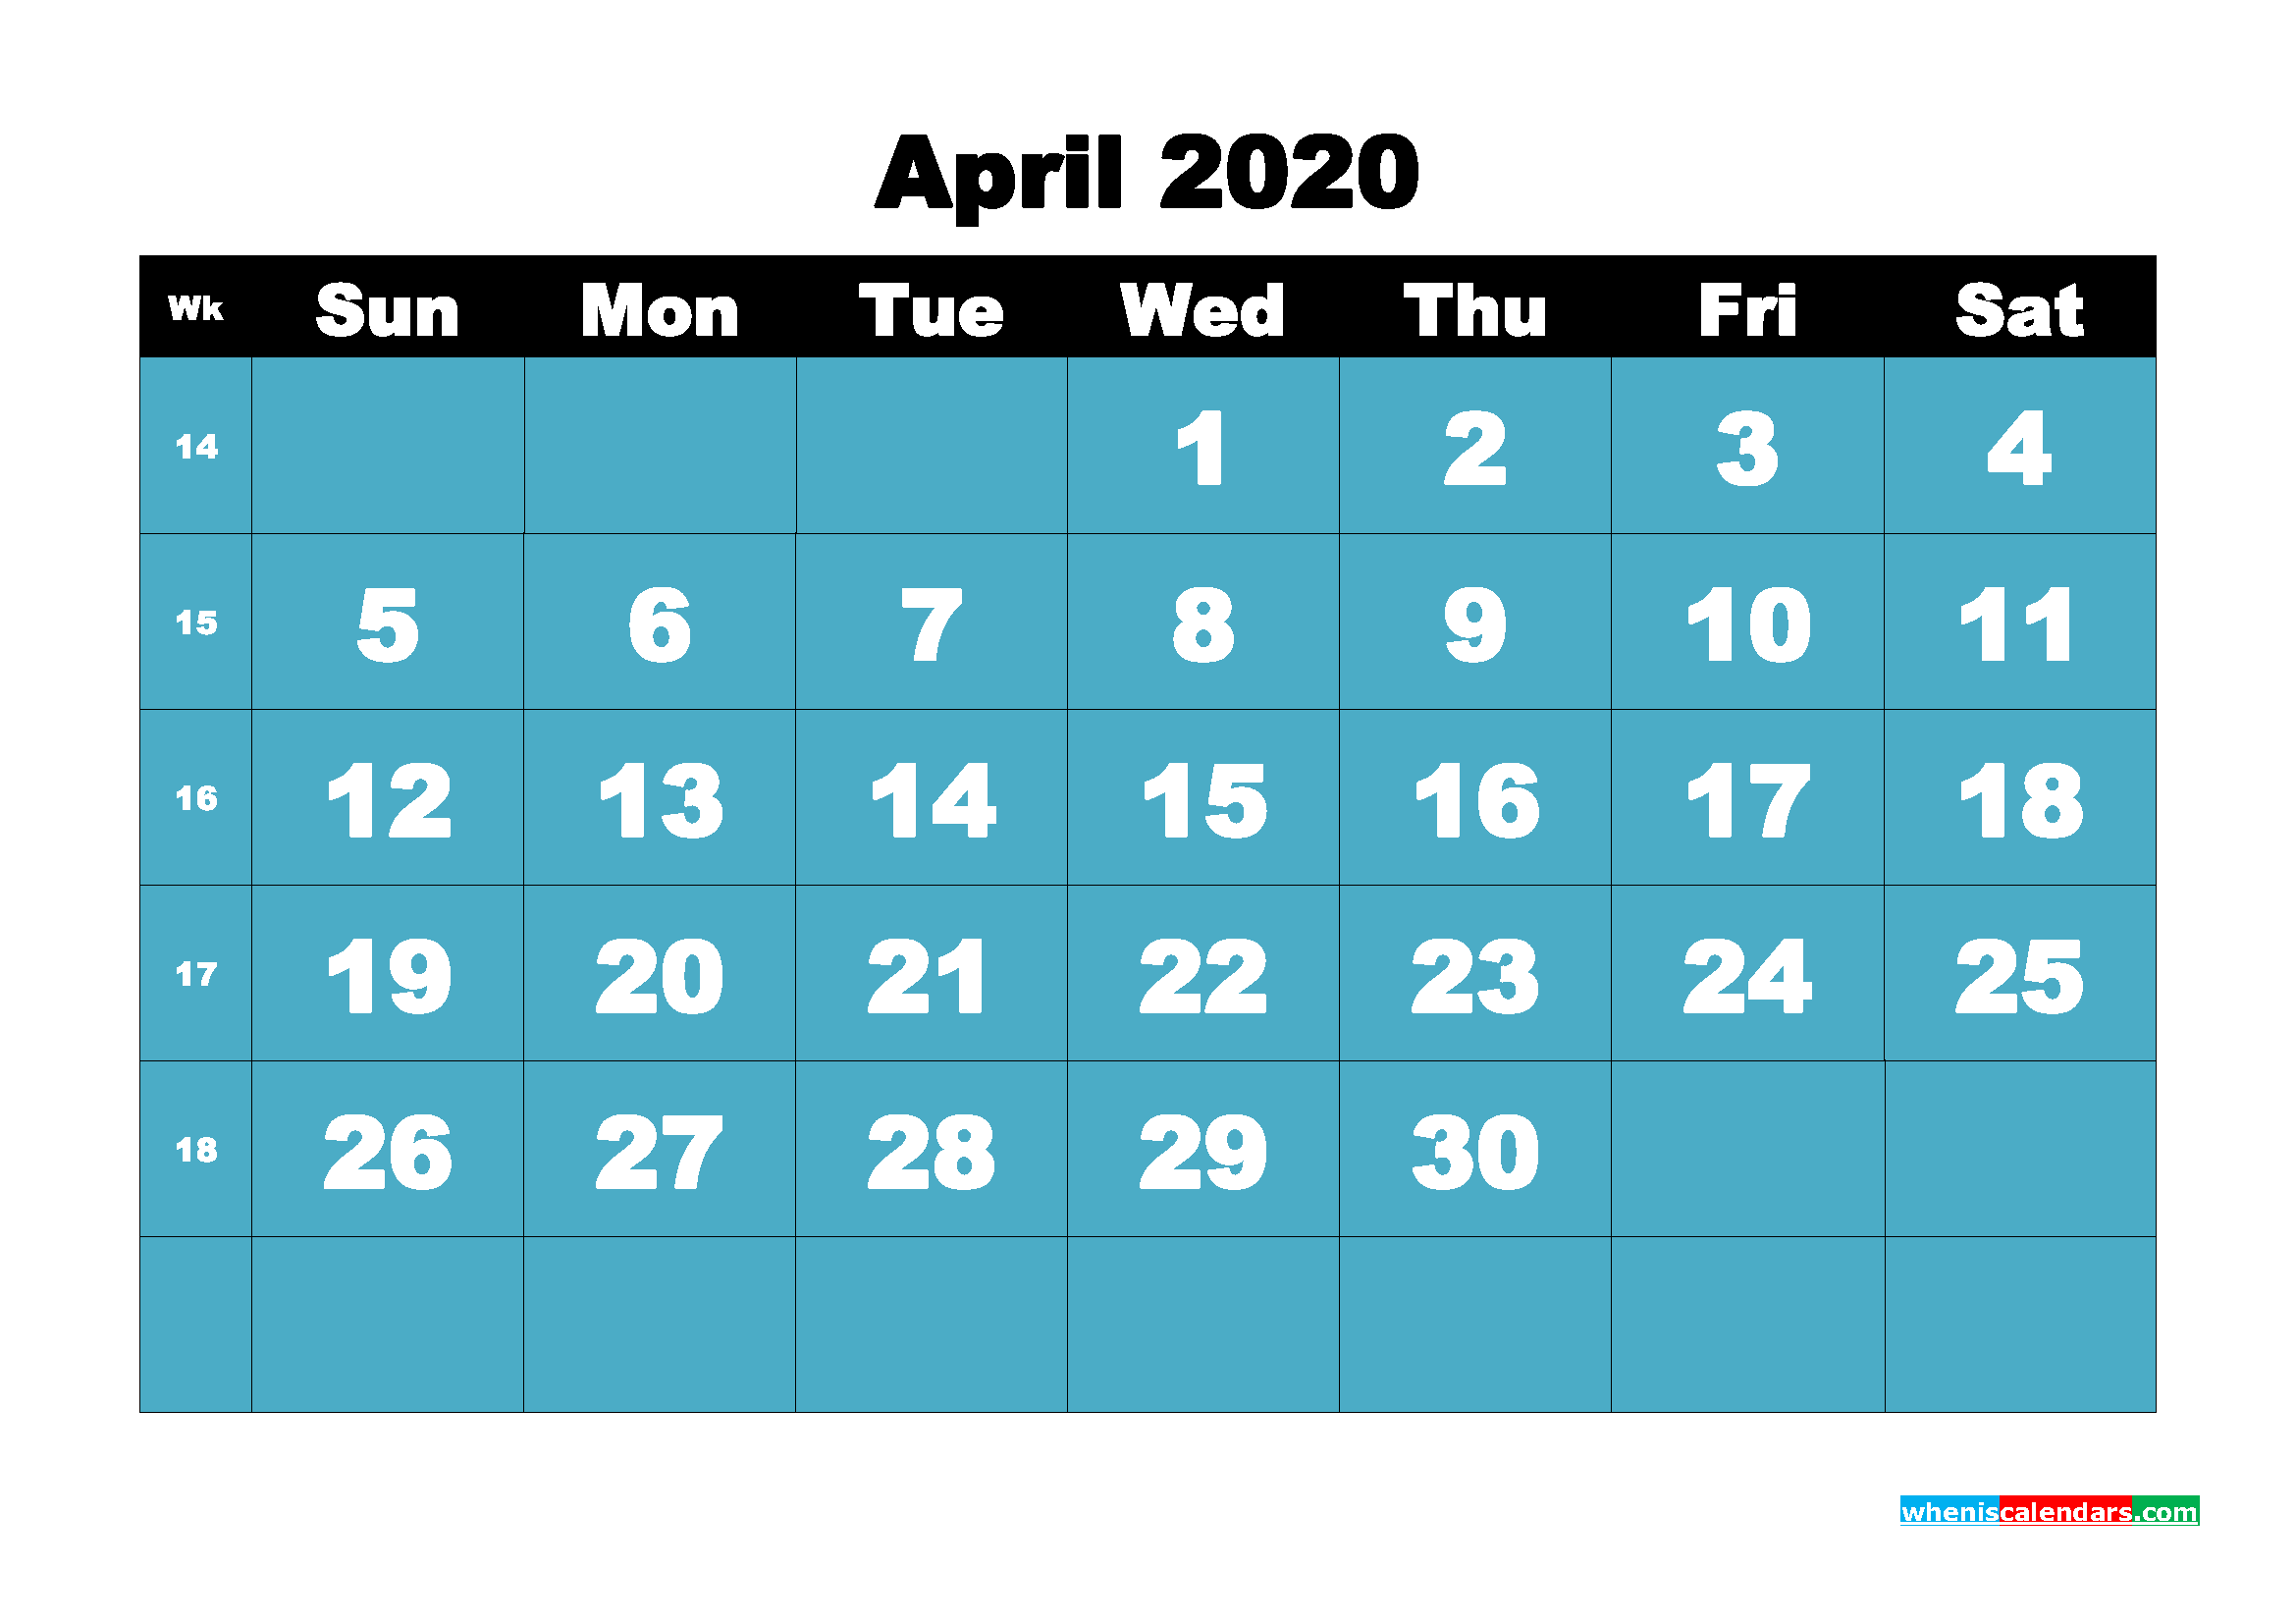 Monthly Printable Calendar 2020 April with Week Numbers